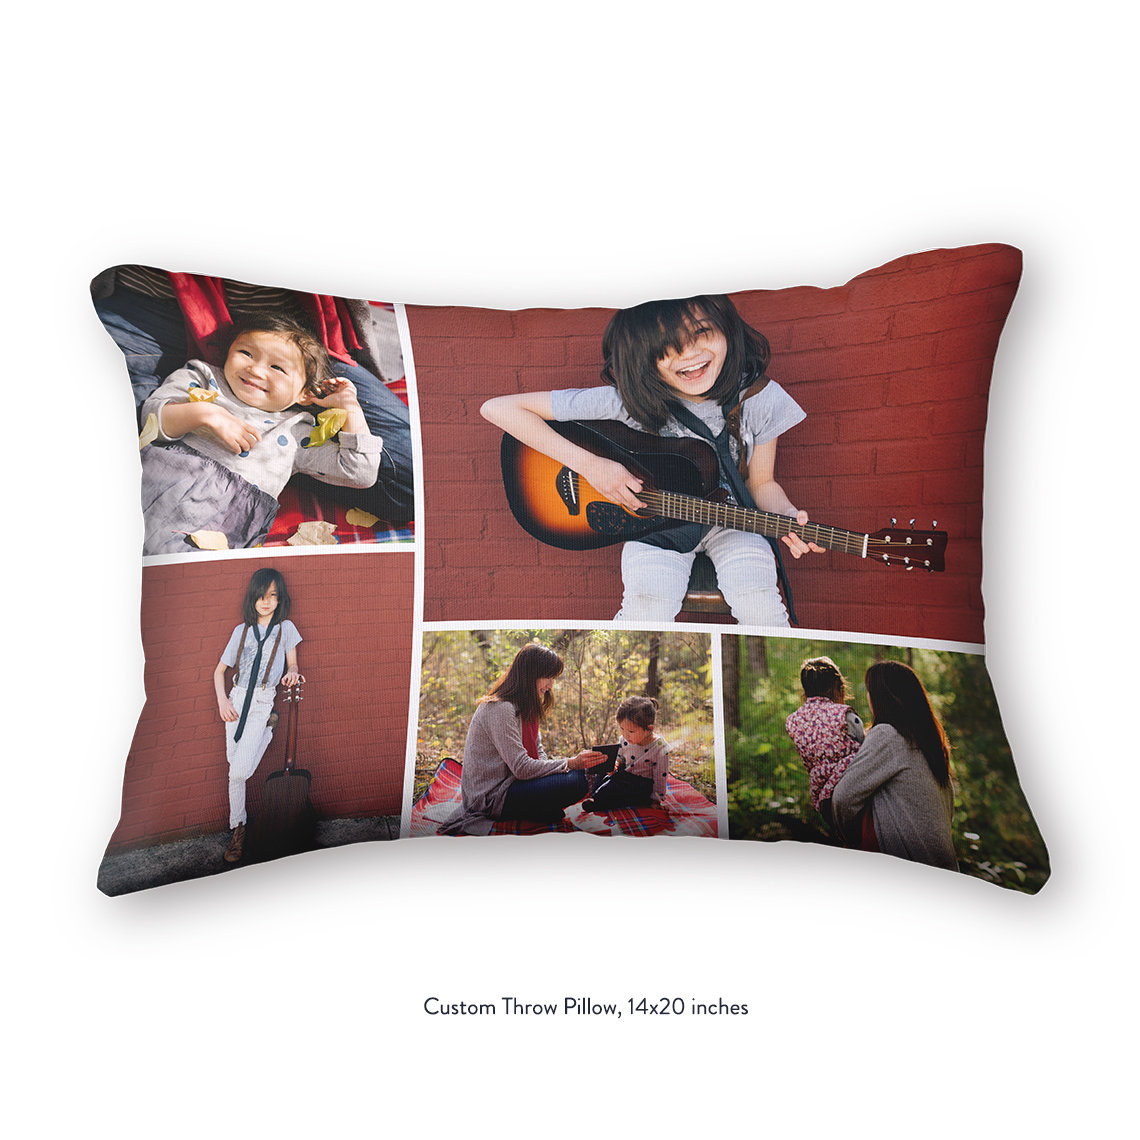 Collage Throw Pillow, 14x20 | Collage Throw Pillows | Blankets and ...